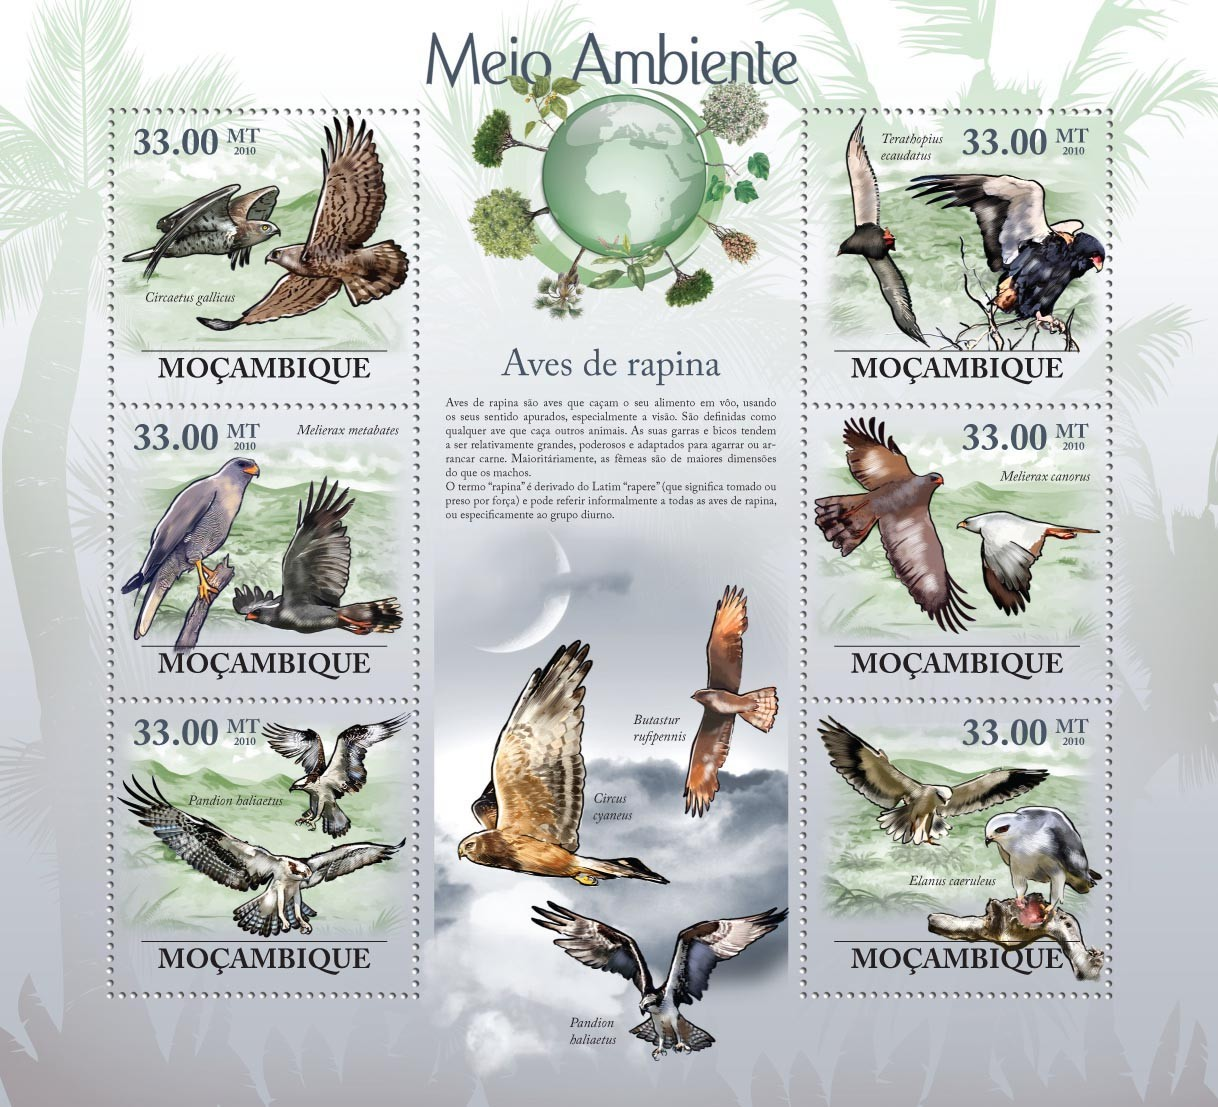 Raptors, ( Circaetus gallicus, Mielerax metabates, Pandion baliaetus, etc..) - Issue of Mozambique postage Stamps